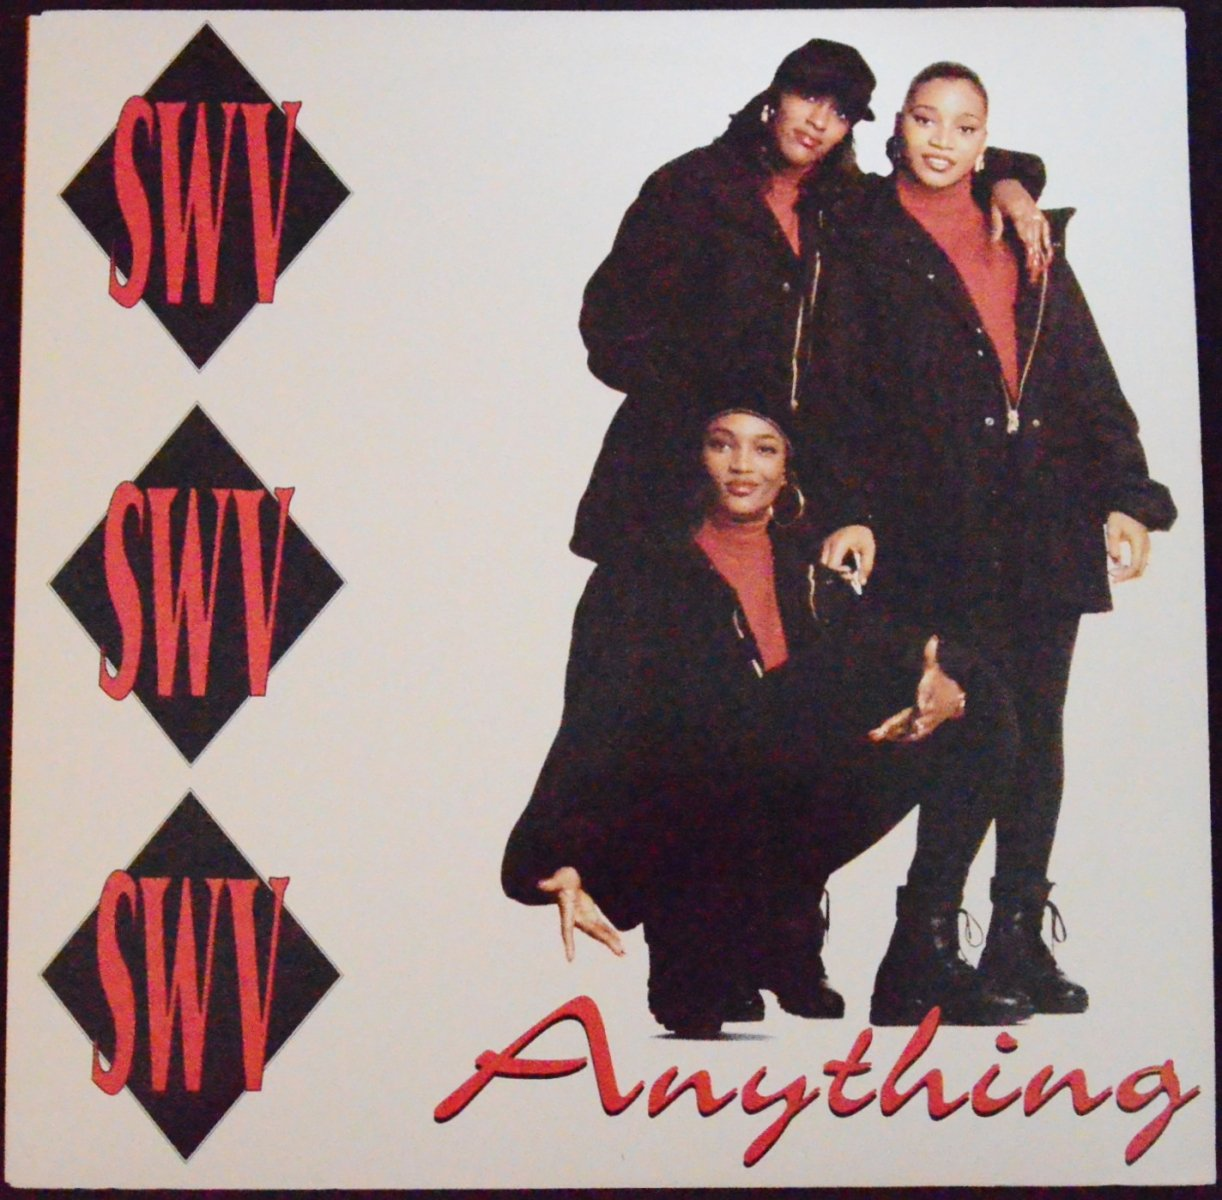 SWV ‎/ ANYTHING (12